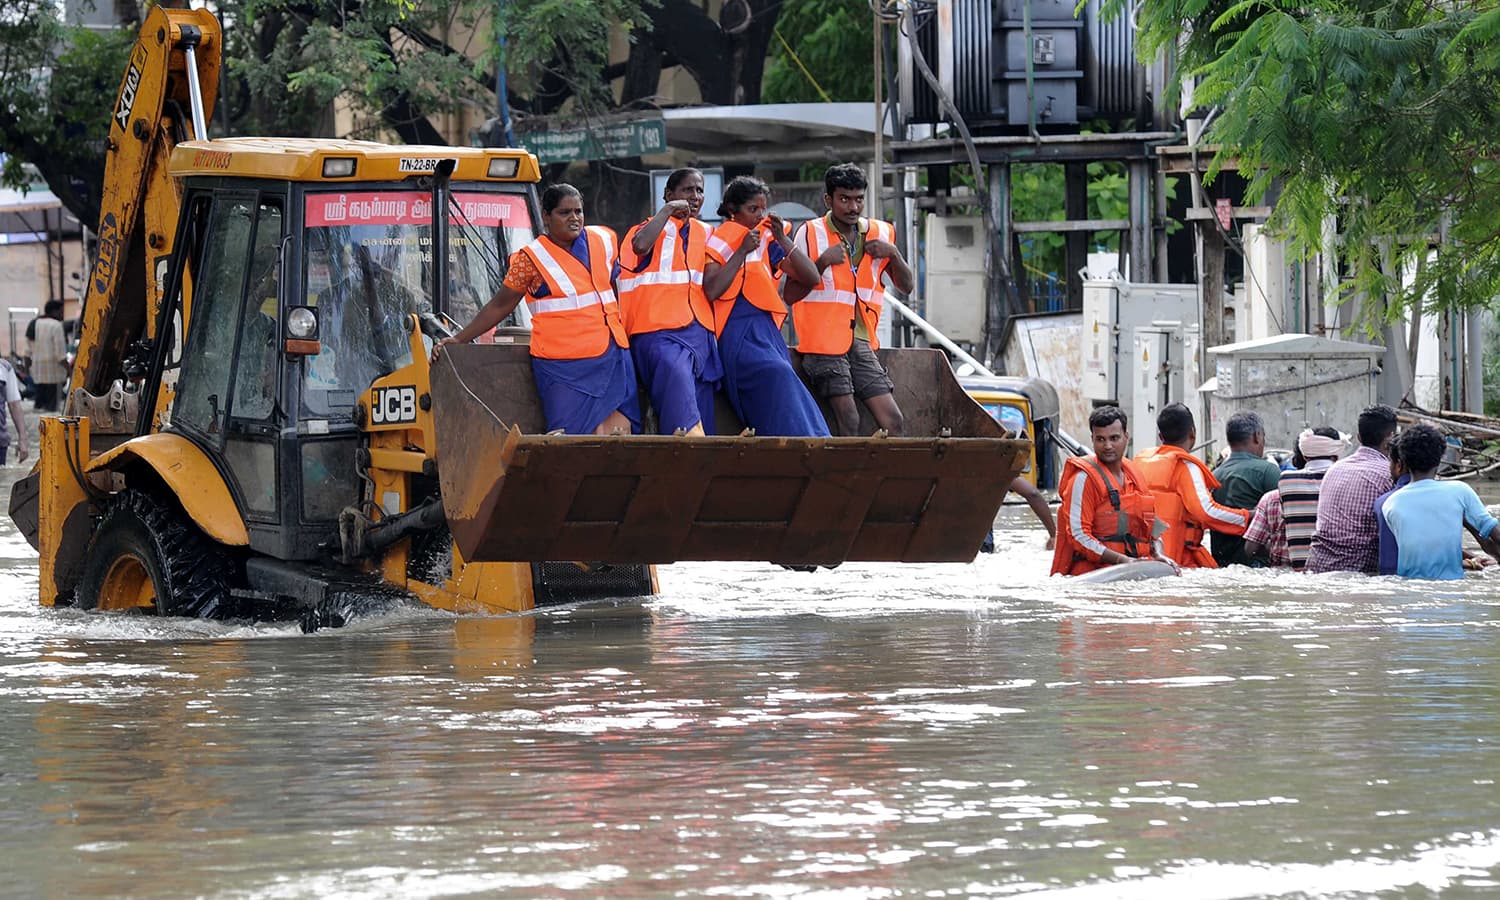 Indian rescue workers travel in the bucket of a bulldozer as they navigate through floodwaters in Chennai on December 3, 2015. — AFP